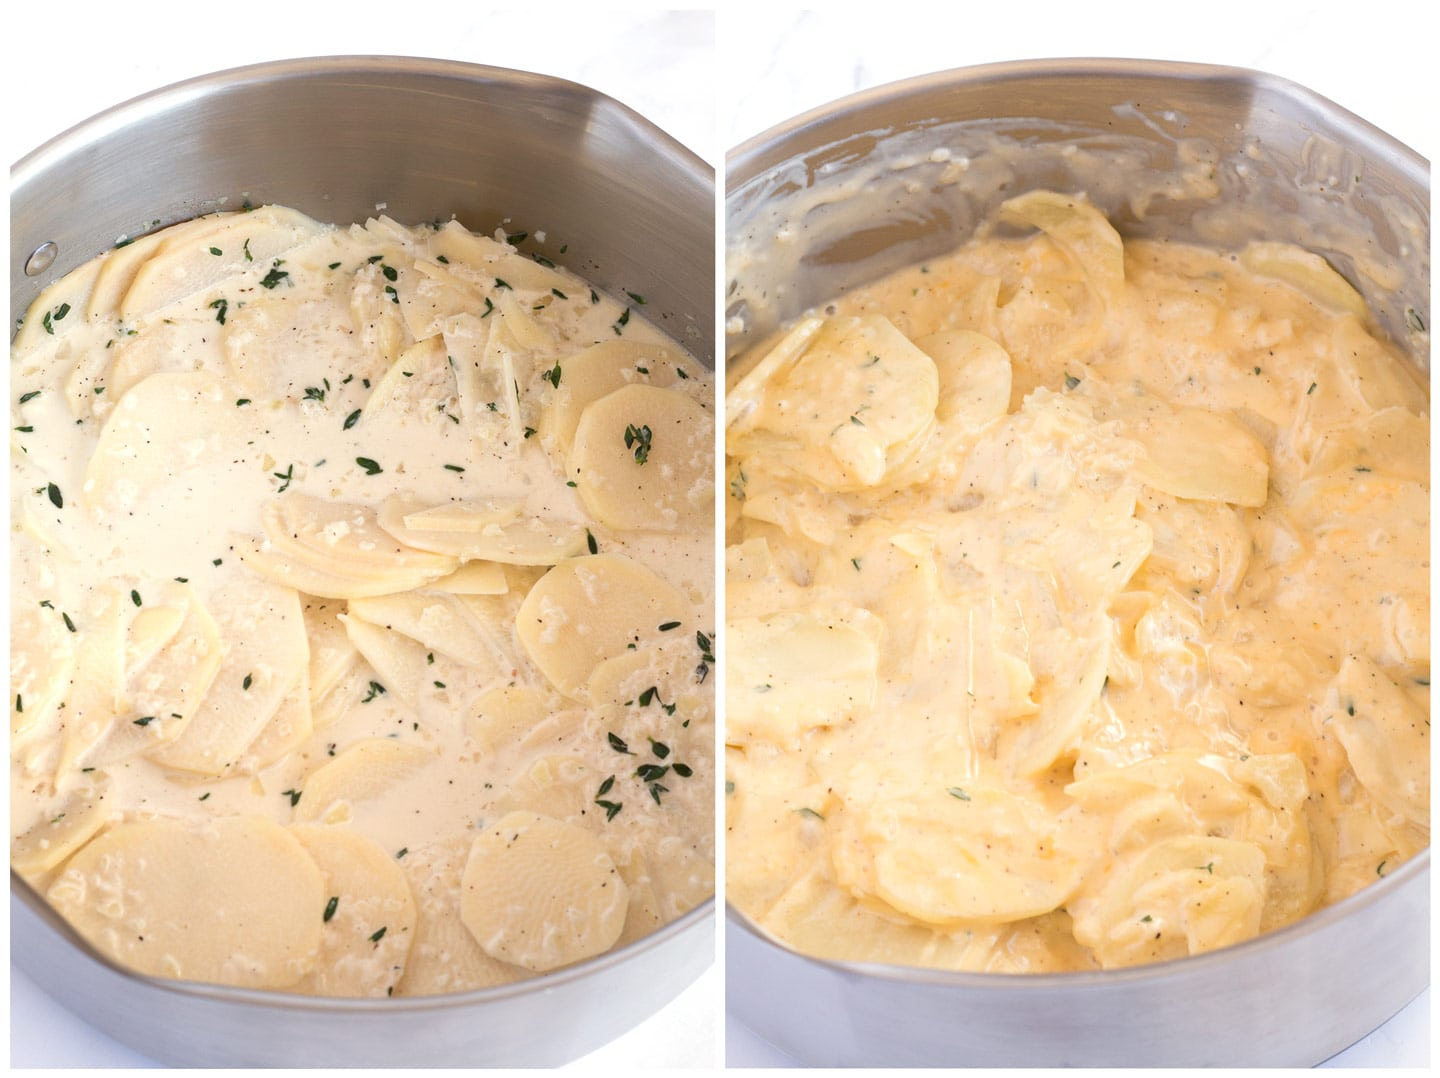 Potatoes before and after the cheese gets added to the creamy sauce.